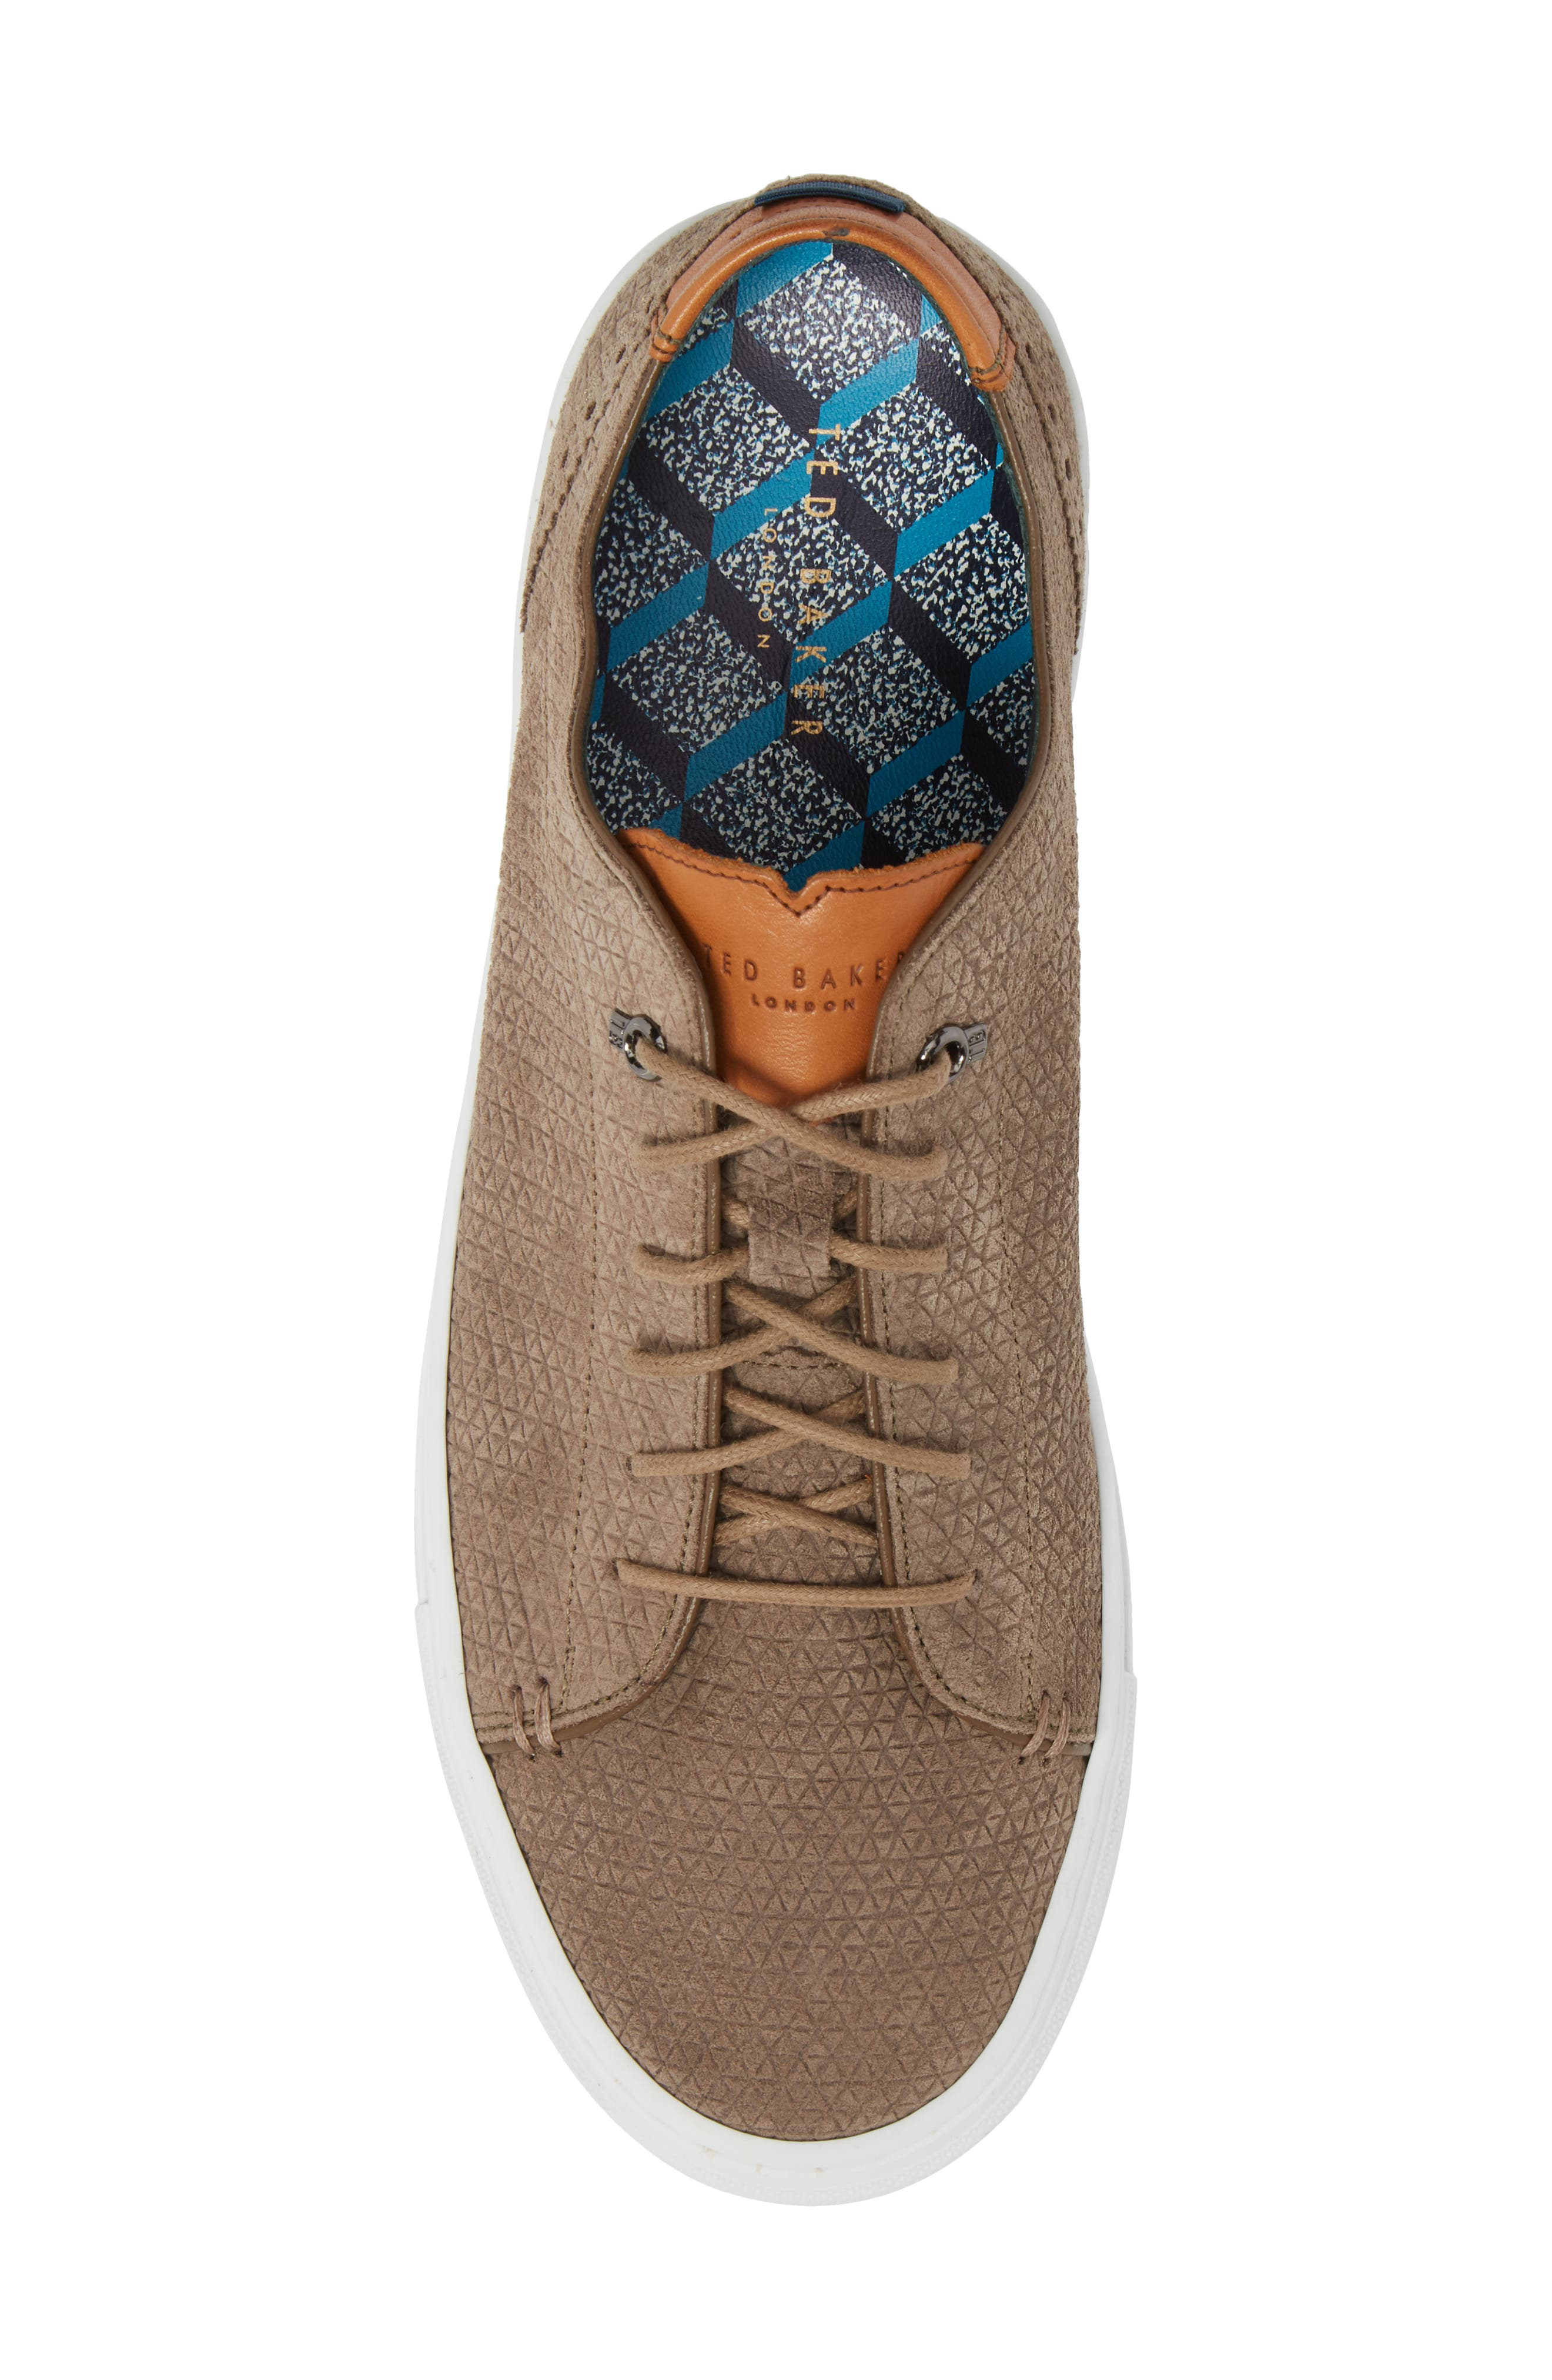 Duukes Embossed Low Top Sneaker,                             Alternate thumbnail 5, color,                             Grey Embossed Suede